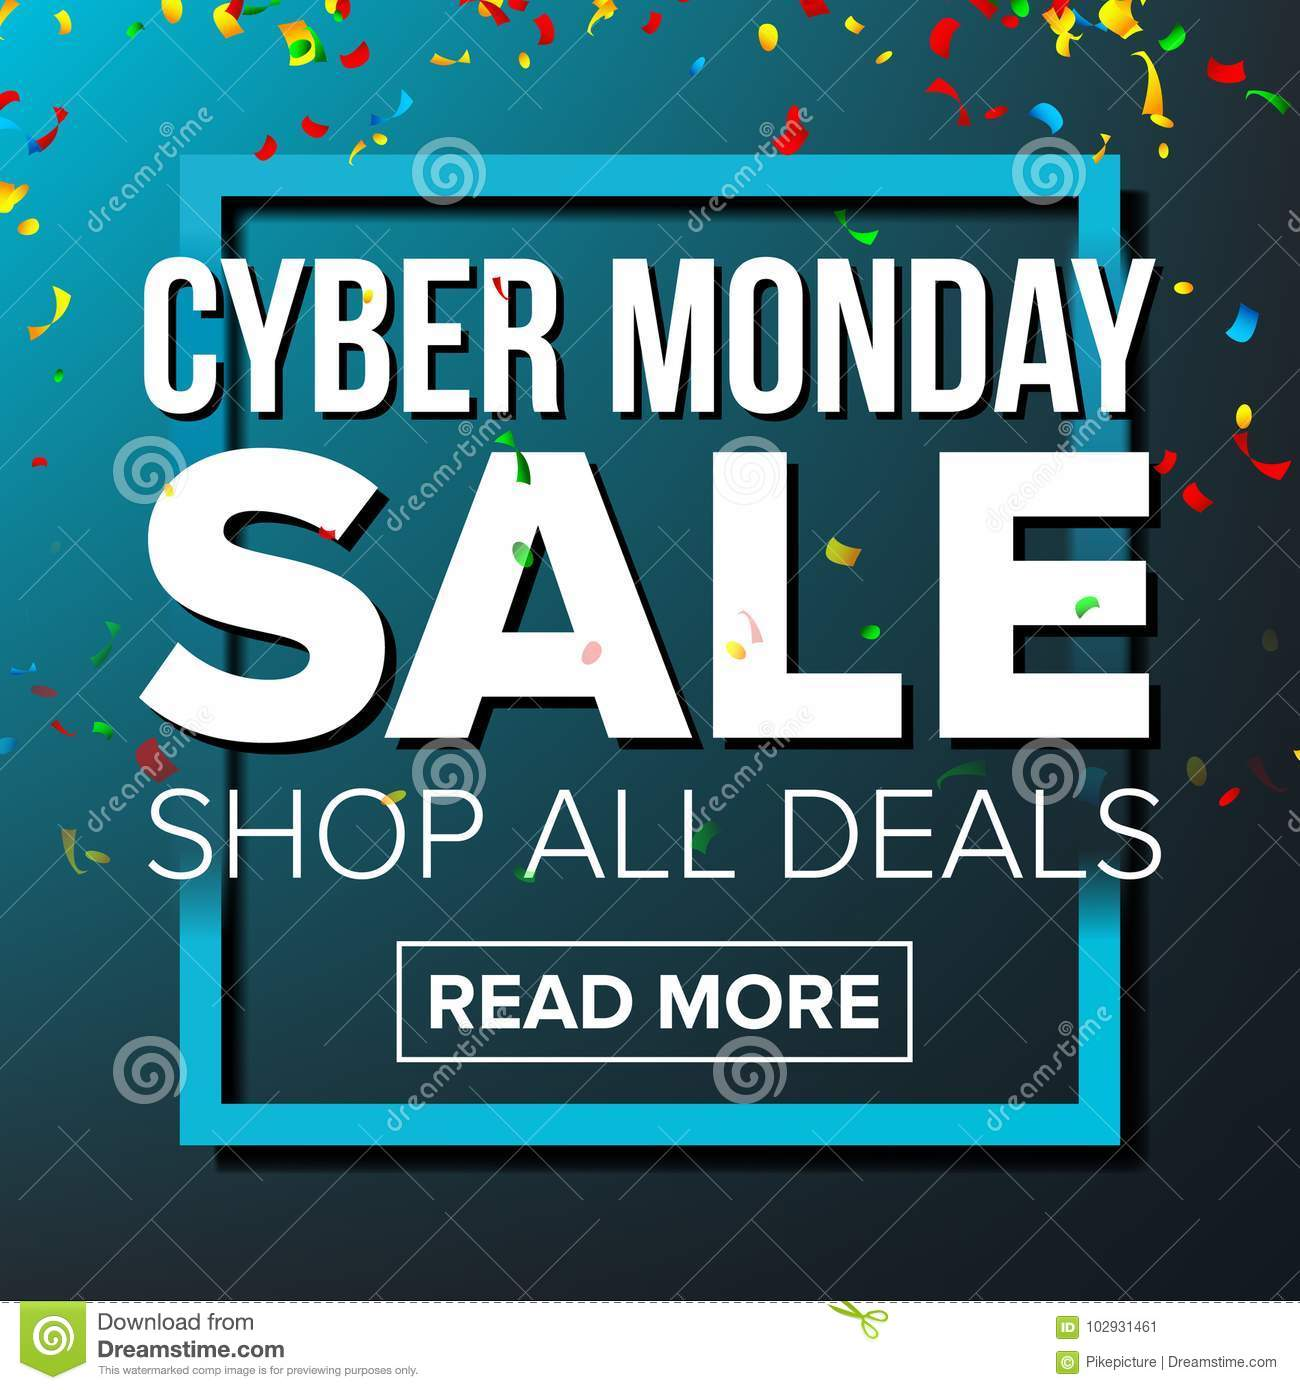 afd6dbba2a1 Cyber Monday Sale Banner Vector. Business Advertising Illustration ...